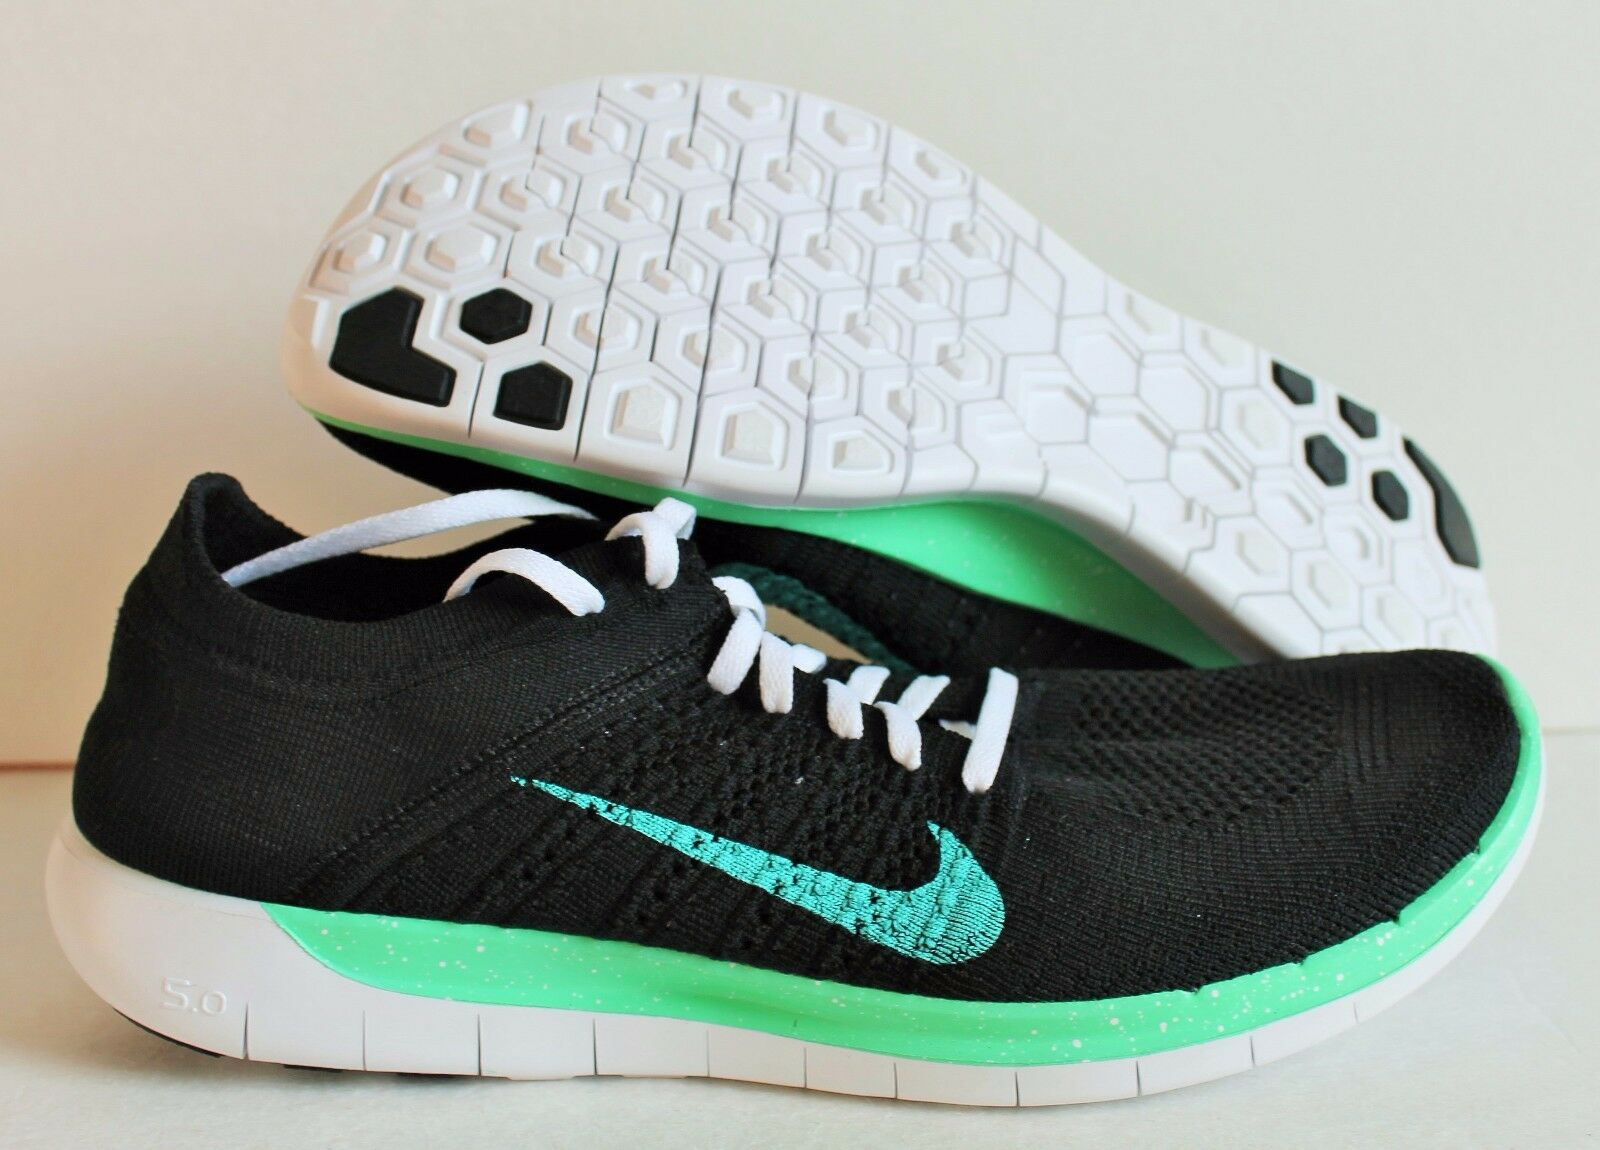 NIKE MEN FREE FLYKNIT 5.0 ID BLACK/TURQUOISE/GREEN/WHITE [653695-002]  SZ 11.5W  [653695-002] BLACK/TURQUOISE/GREEN/WHITE 8d9b32